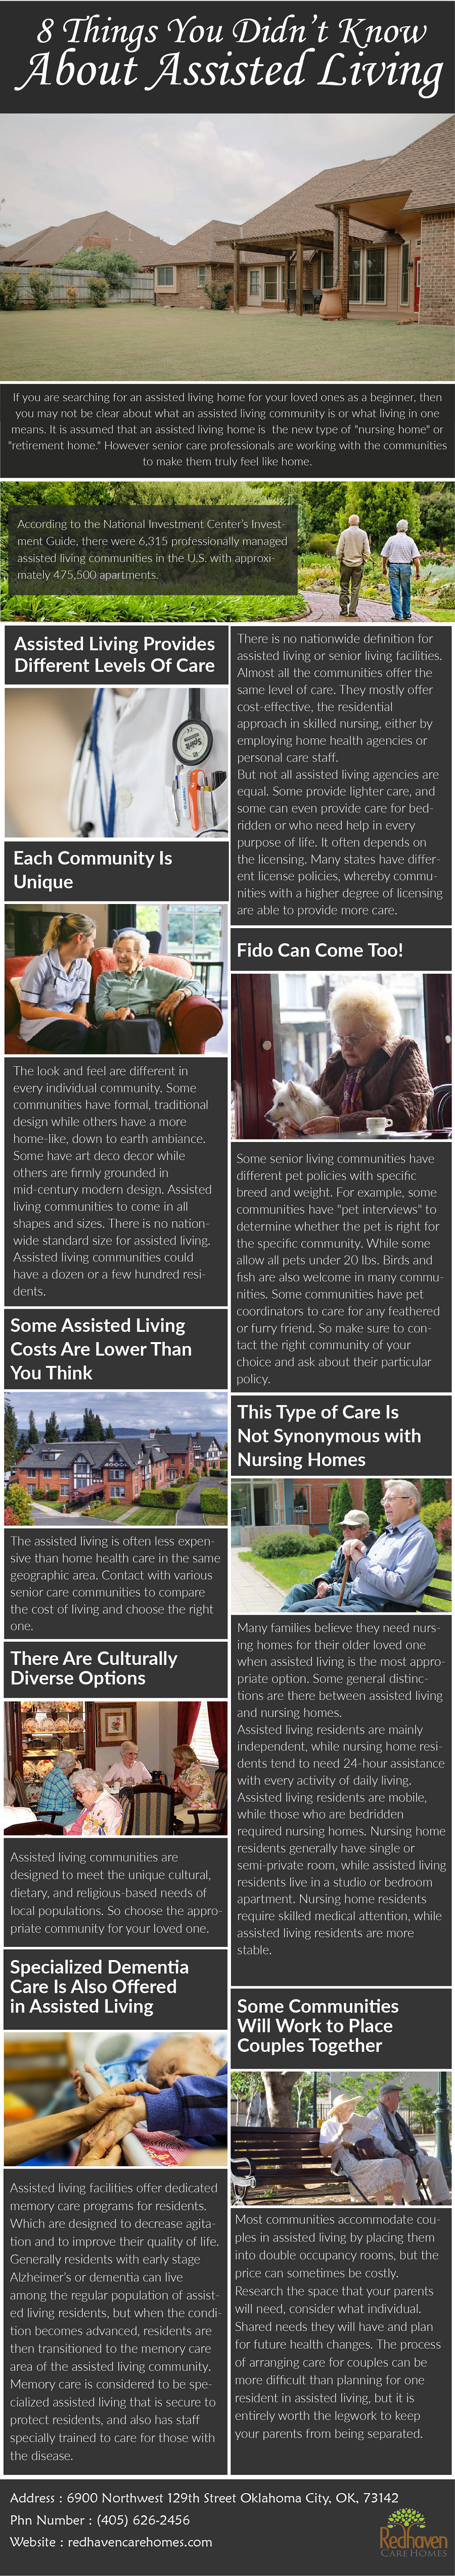 8 Things You Didn't Know About Assisted Living.png